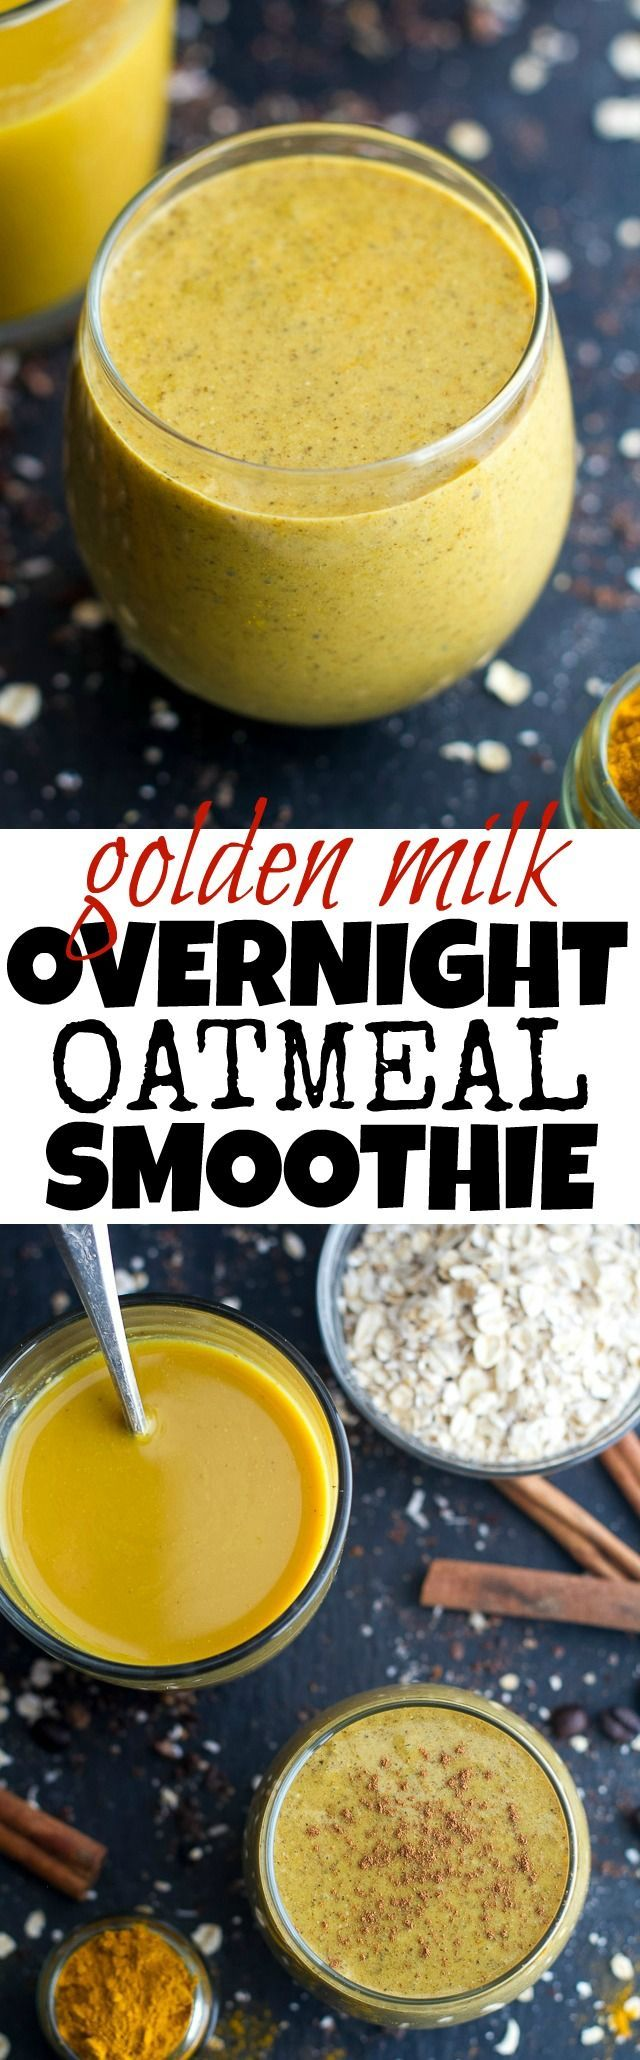 For the golden milk: 1 cup unsweetened almond milk 1 Tbsp  maple syrup ½ tsp vanilla extract ½ tsp turmeric ¼ tsp ground cinnamon ¼ tsp ground ginger pinch of black pepper For the smoothie: ¼ cup  rolled oats 1 Tbsp  chia seeds 1 cup  brewed golden milk (see above) 1 medium-size banana, frozen